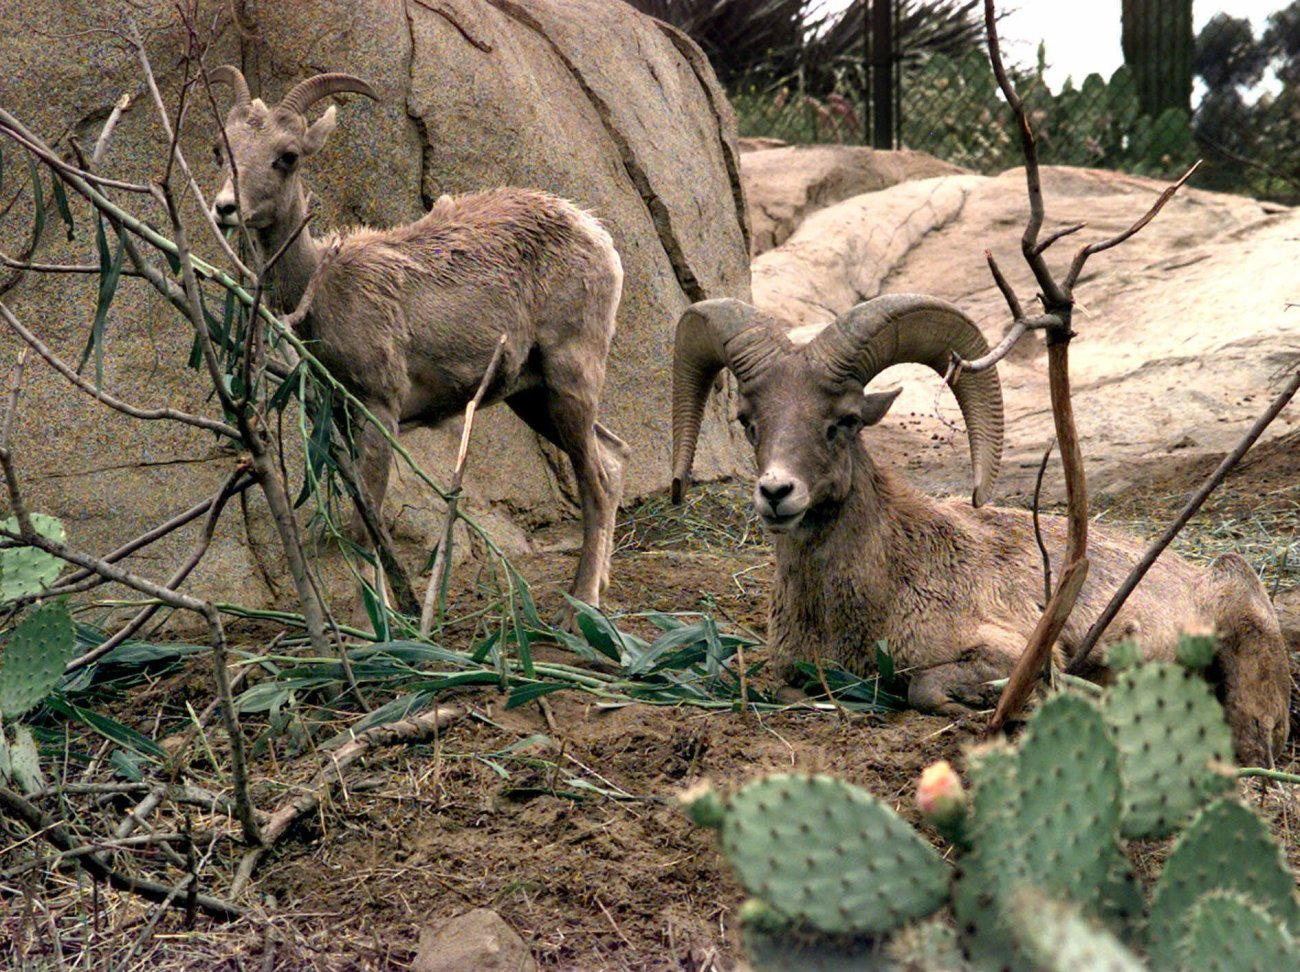 Disease may be killing California desert bighorn sheep